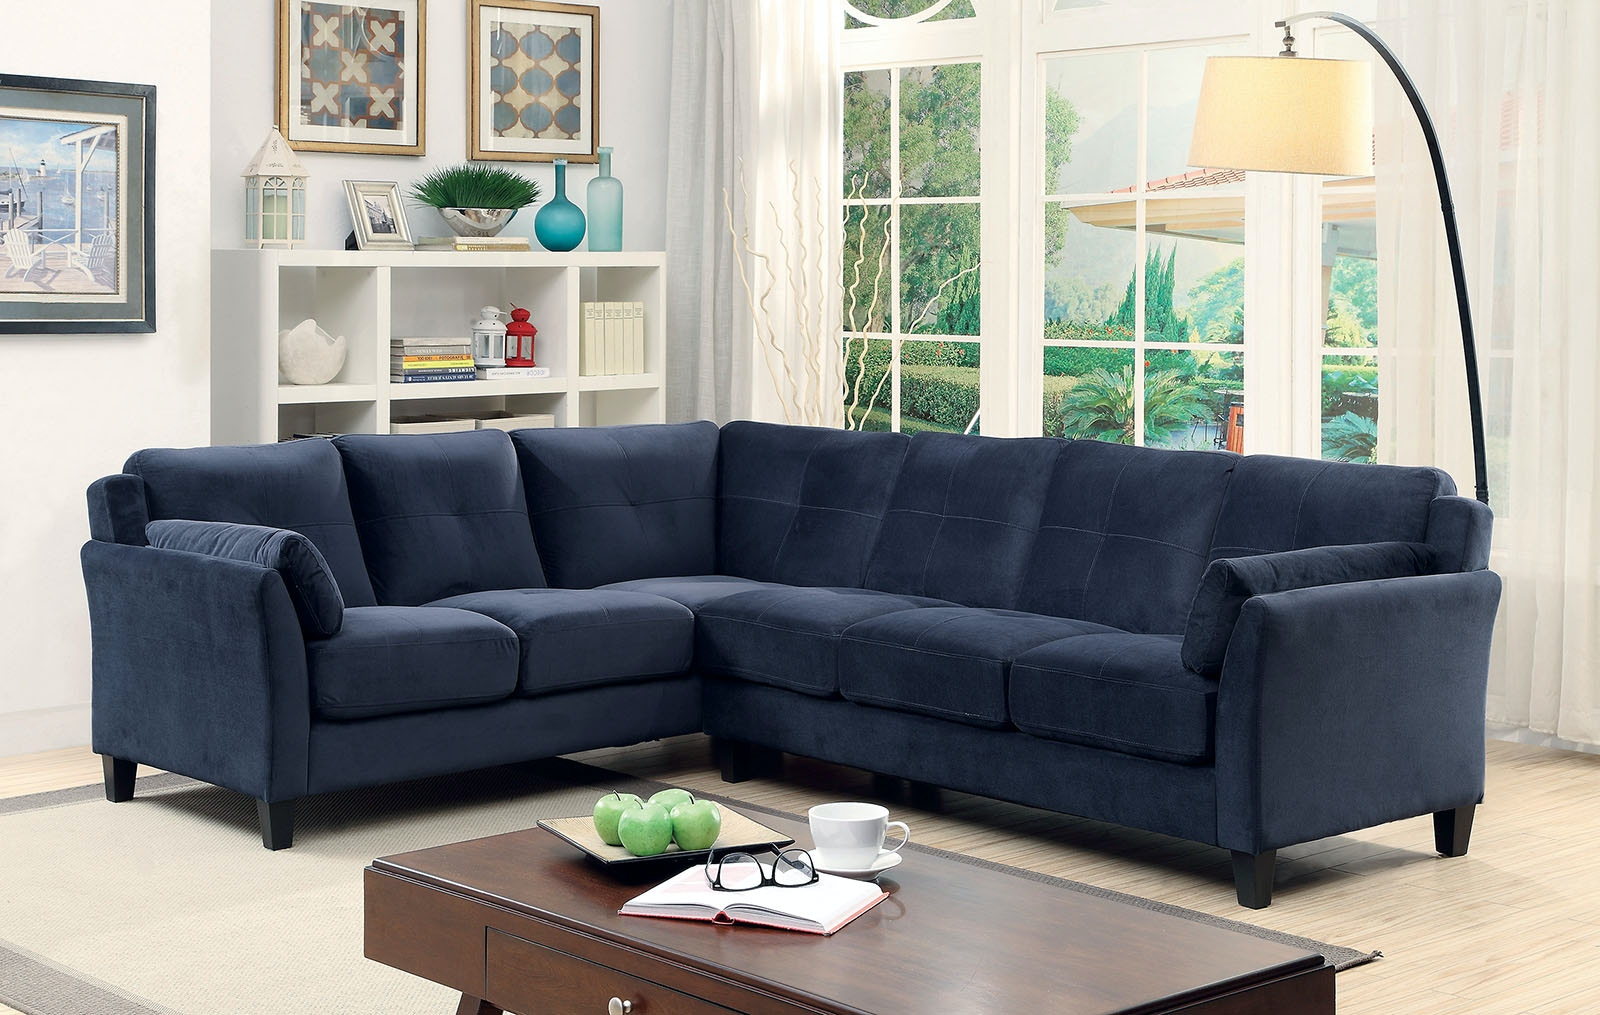 Furniture Of America Living Room Sectional Navy Cm6368nv Sectional